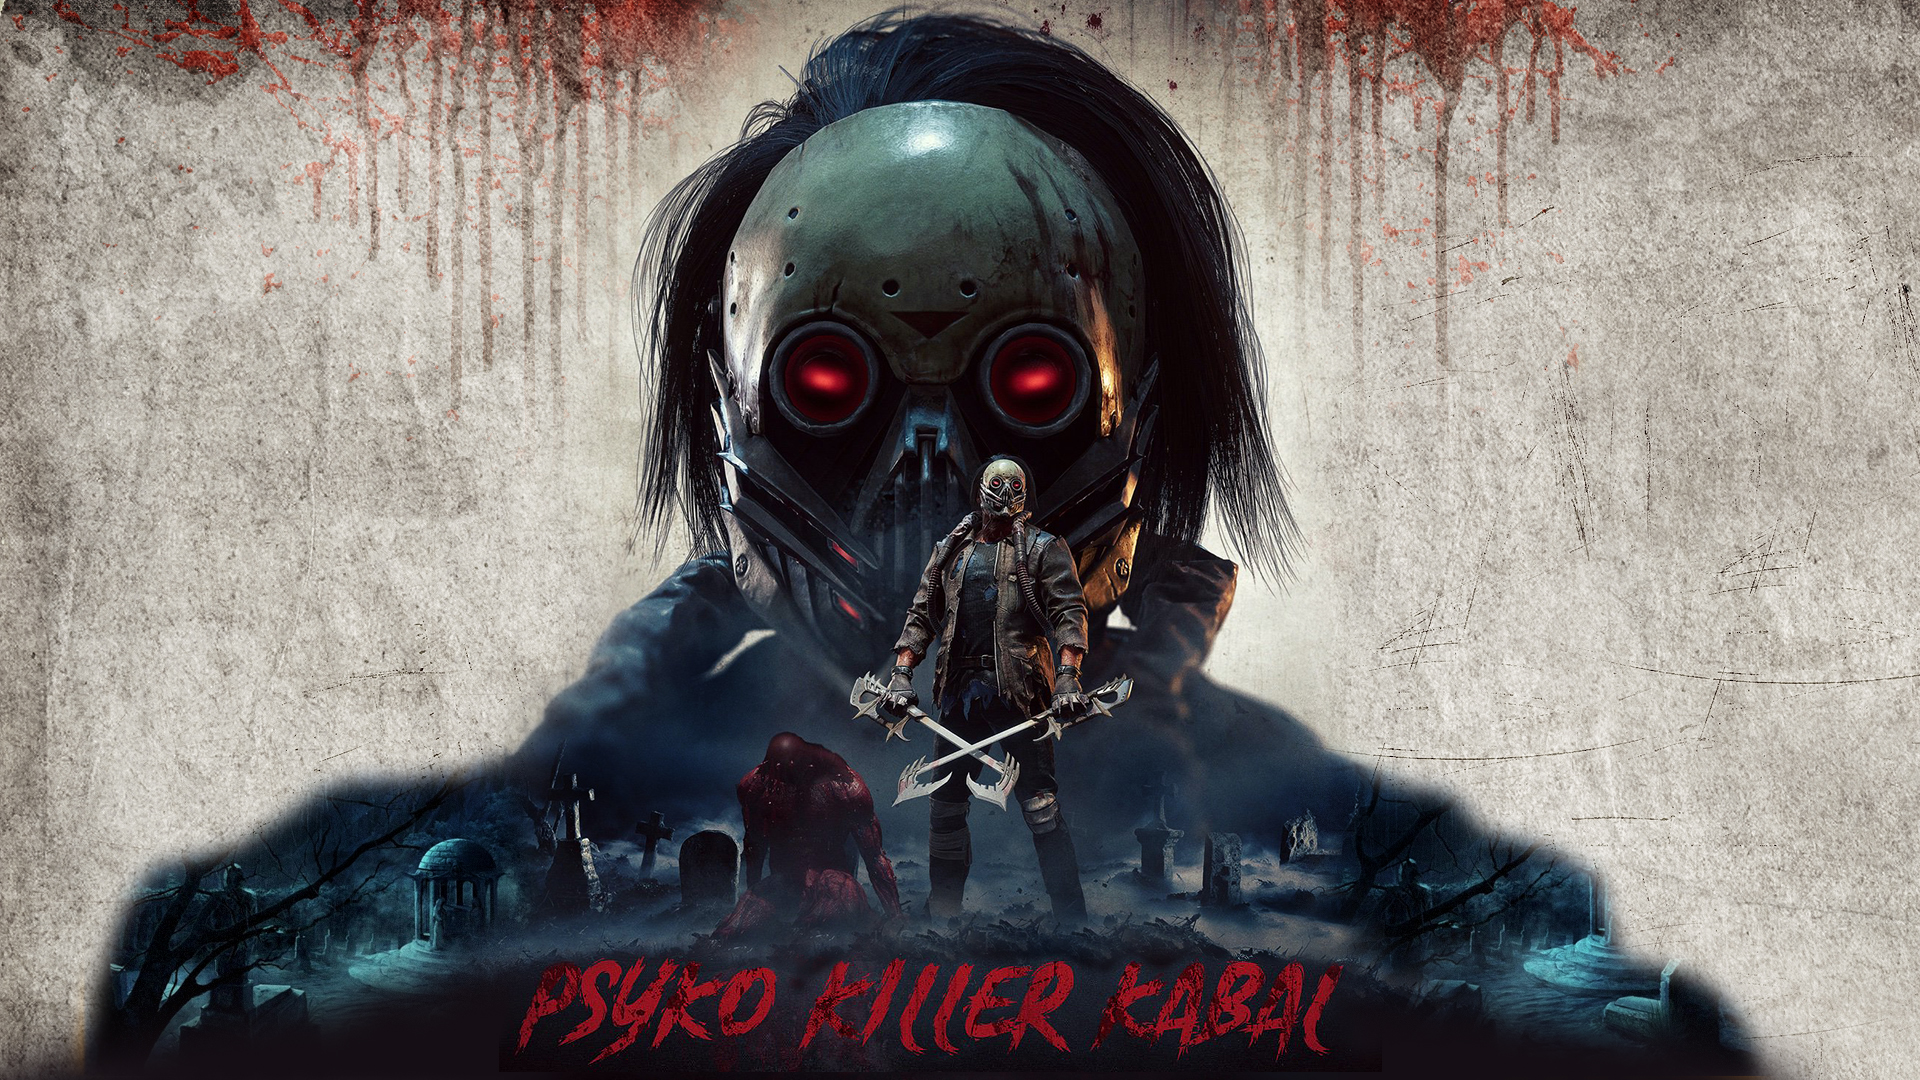 Psyko Killer Kabal Background